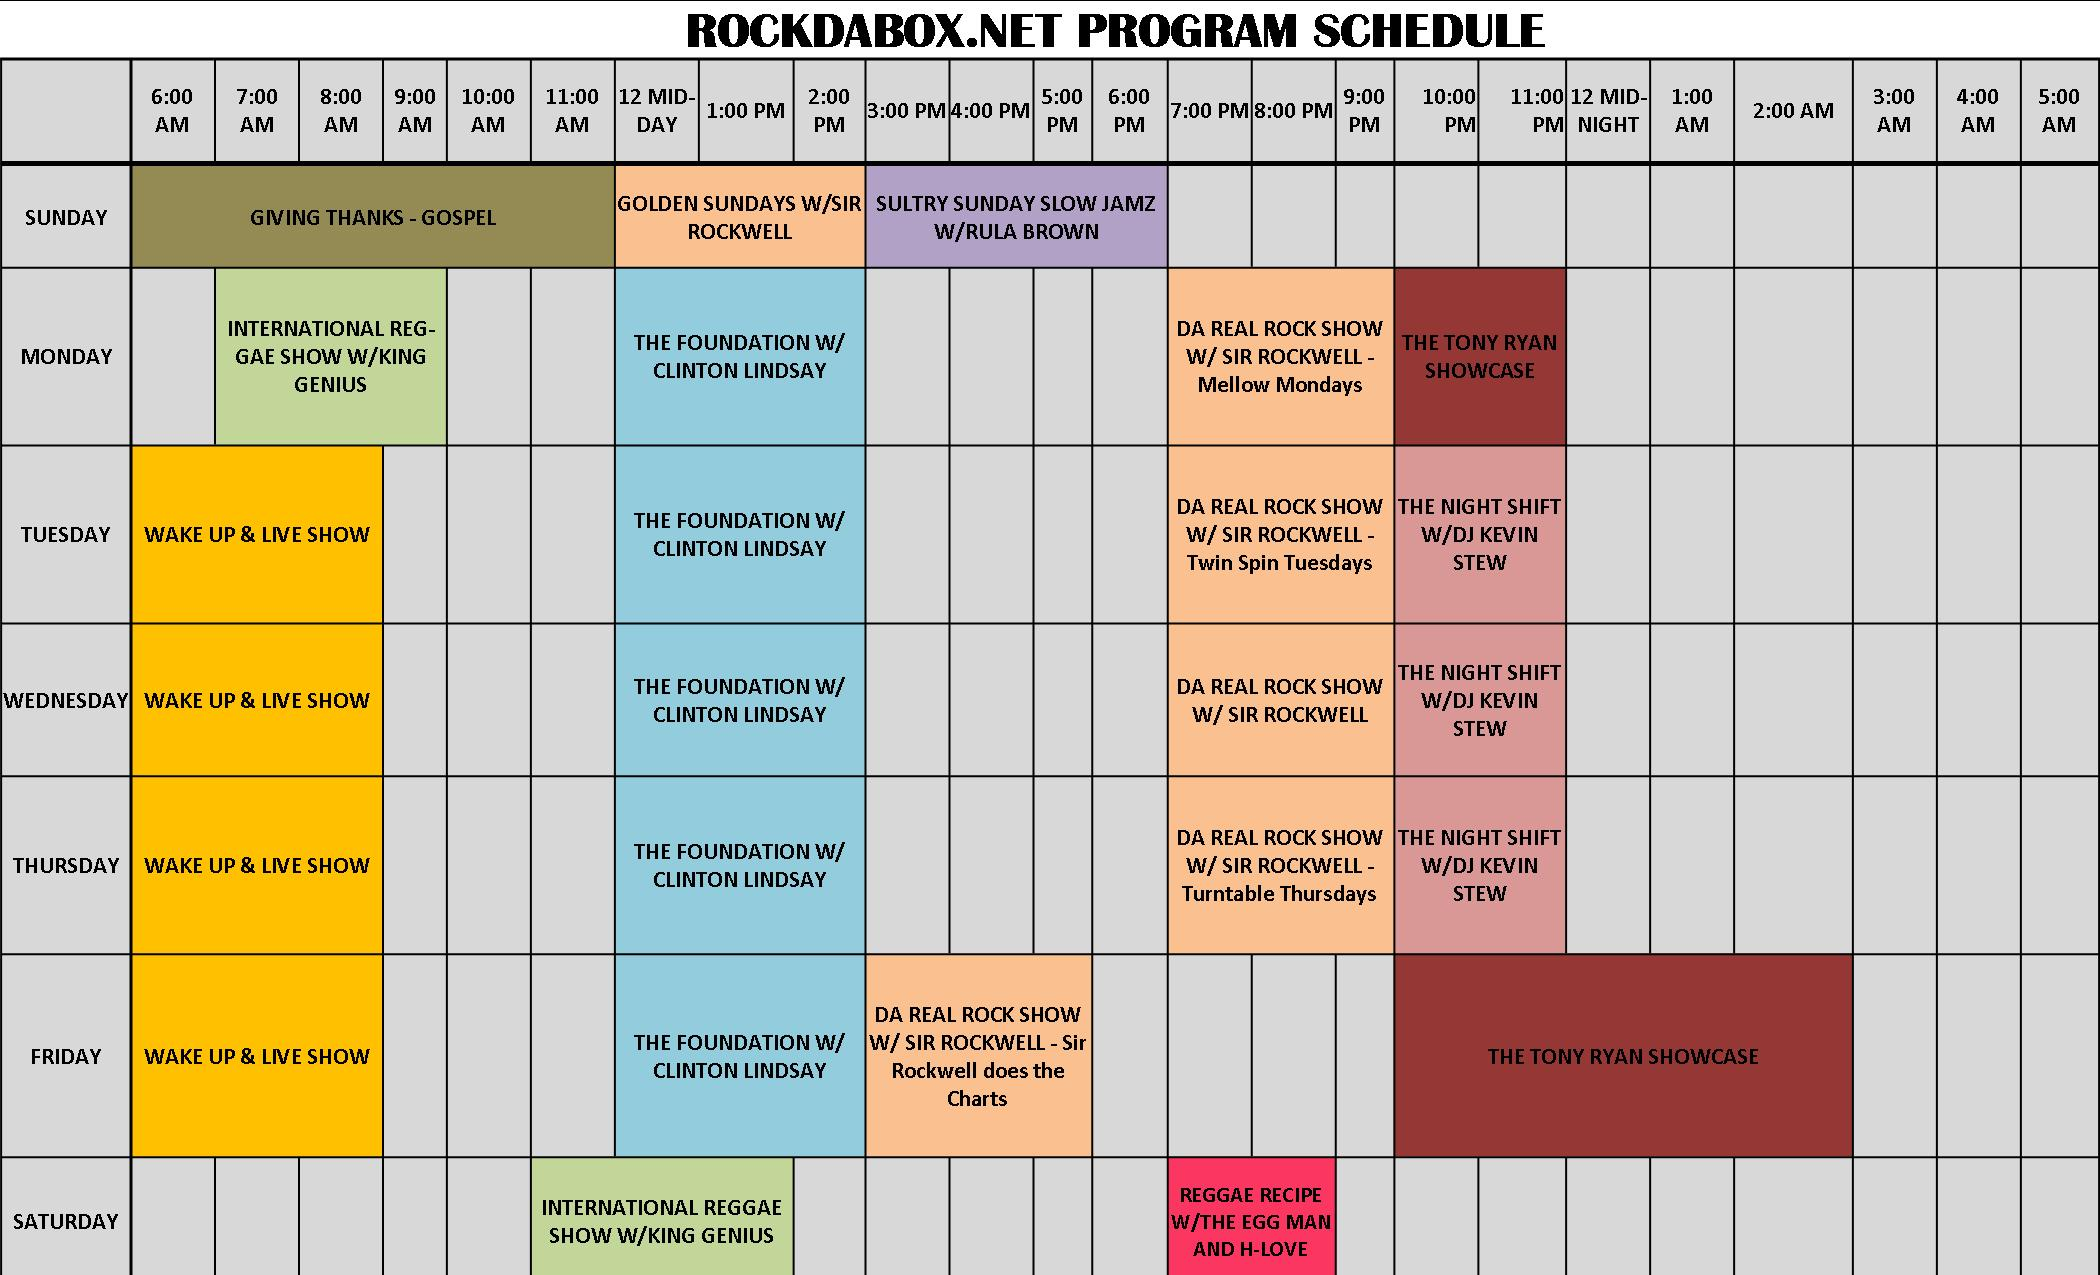 RockDaBox Program Schedule 032913